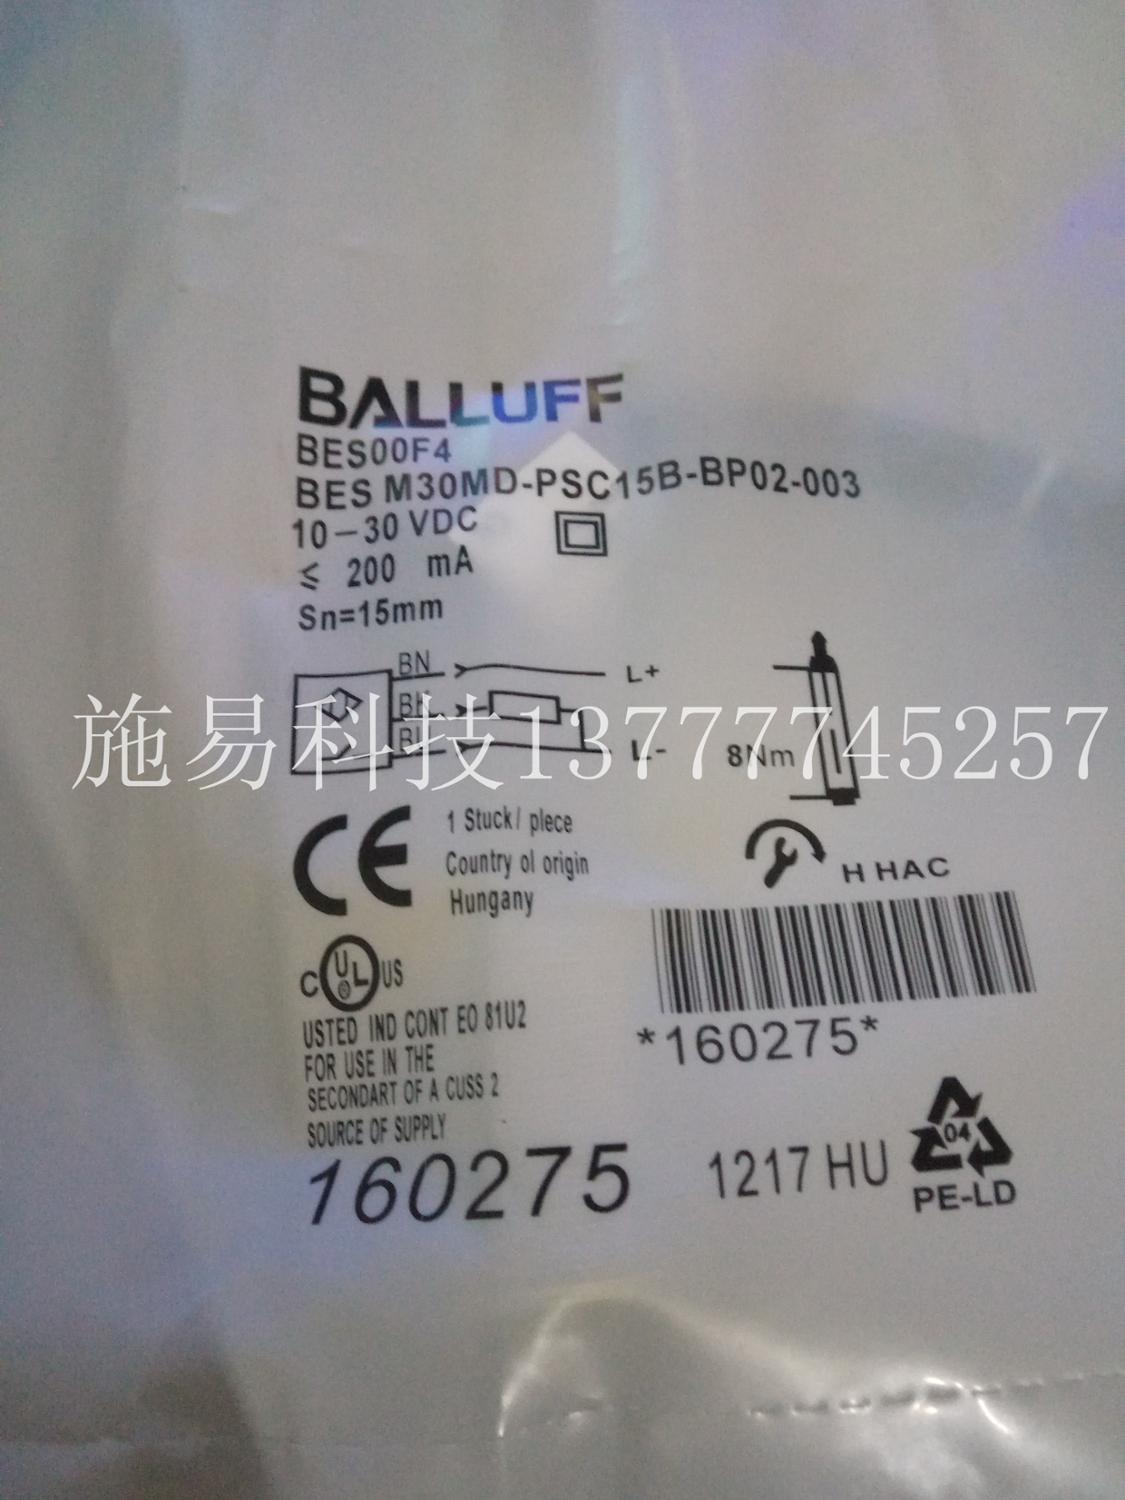 Free shipping 1pcs Brand new proximity inductor BES 516-122-BO-C-05 for all year warranty free shipping 1pcs brand new proximity inductor bes 516 118 bo c 05 for all year warranty